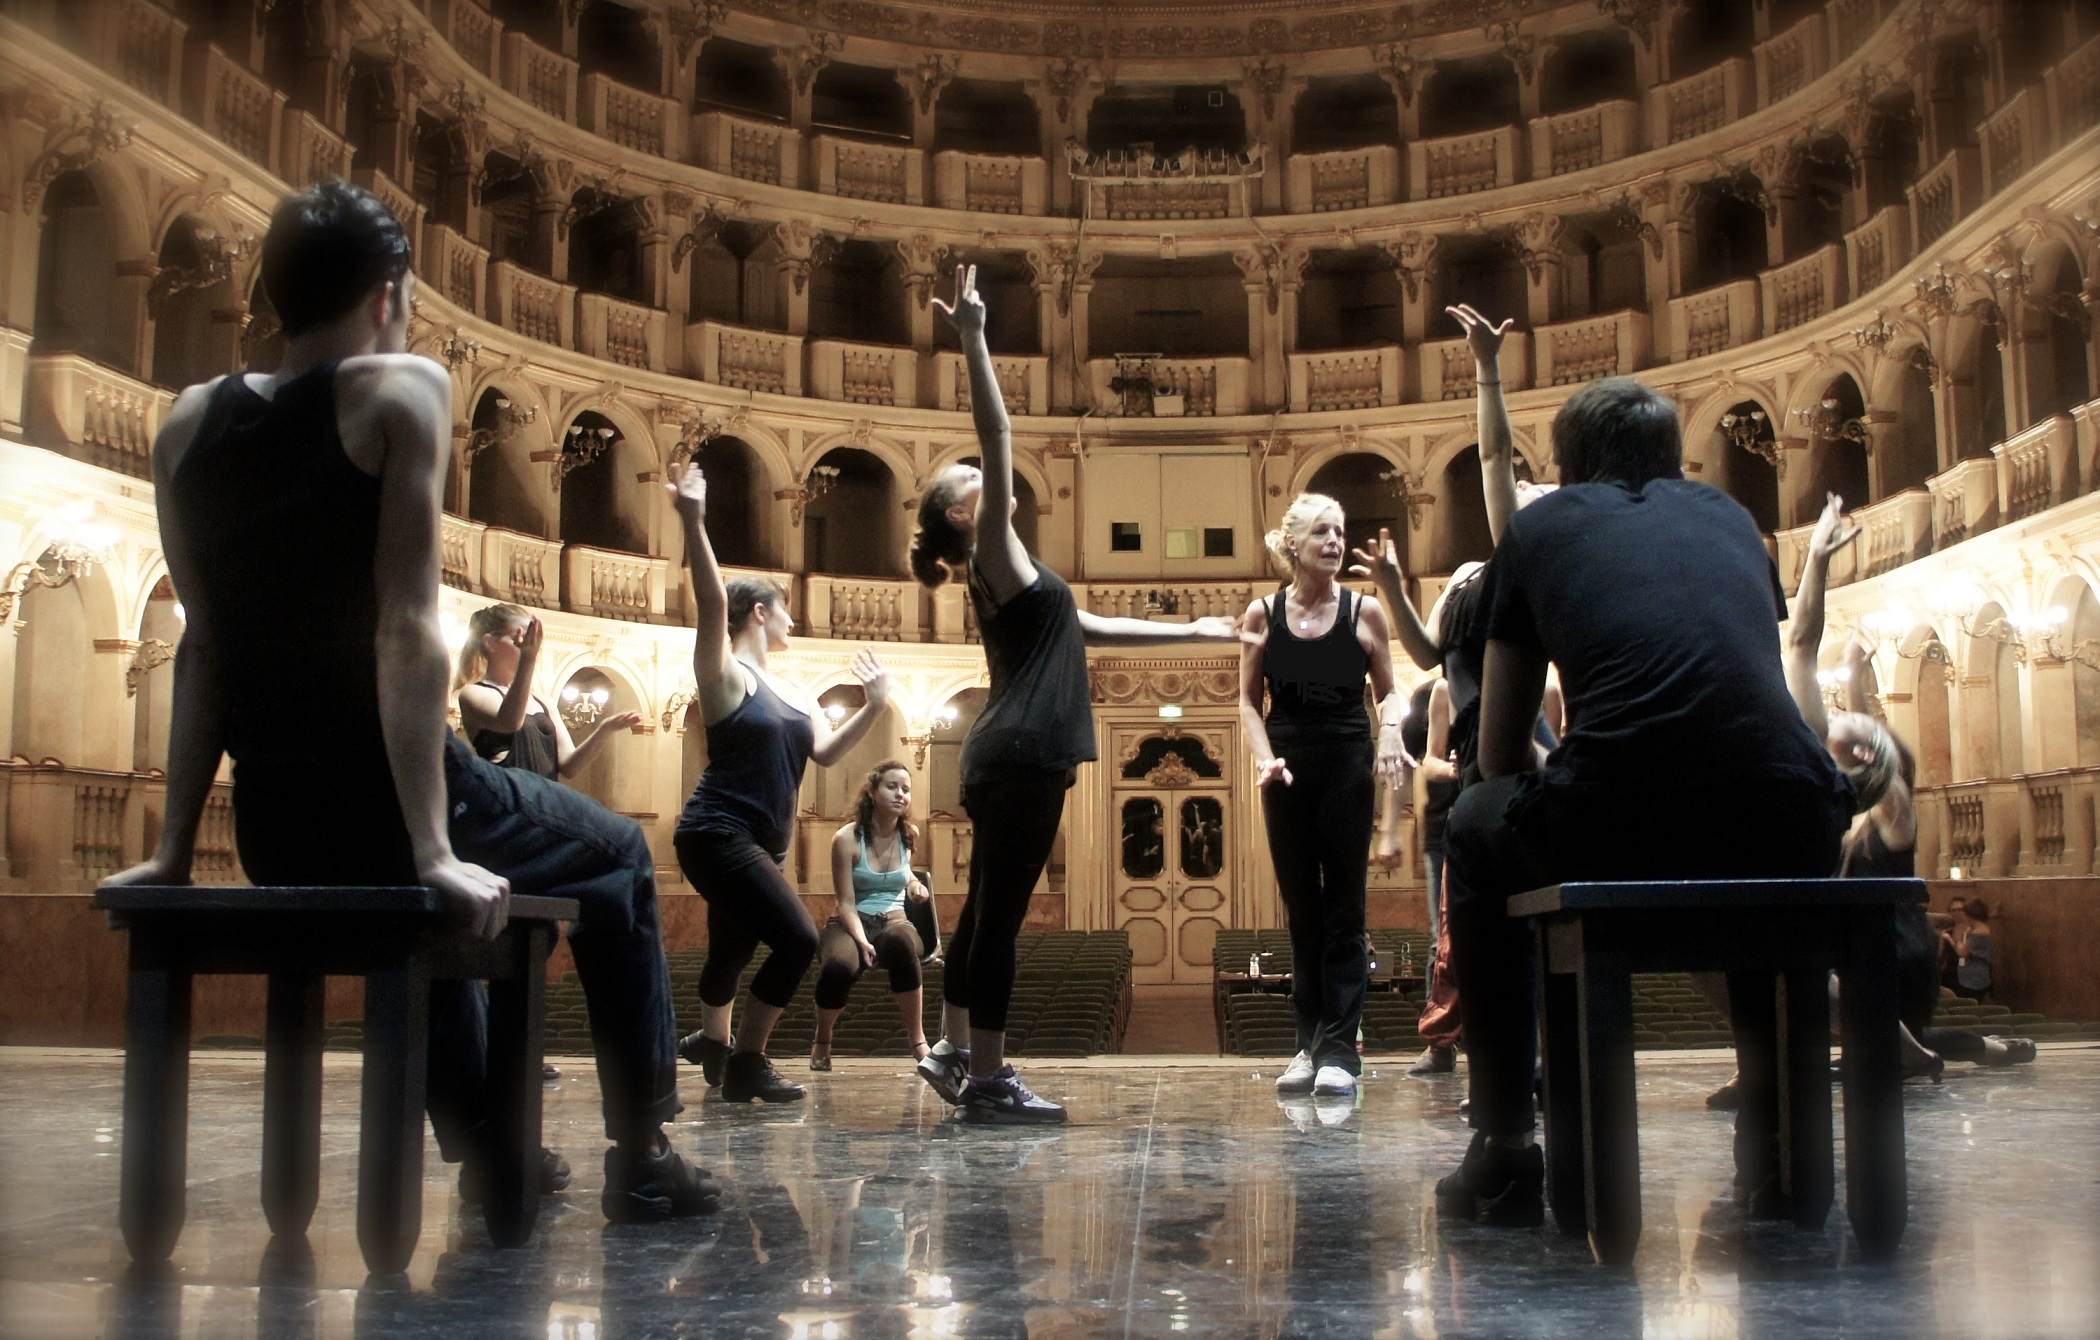 AUDIZIONI PER WEST SIDE STORY – BSMT, REGIA GIANNI MARRAS. IL BANDO.